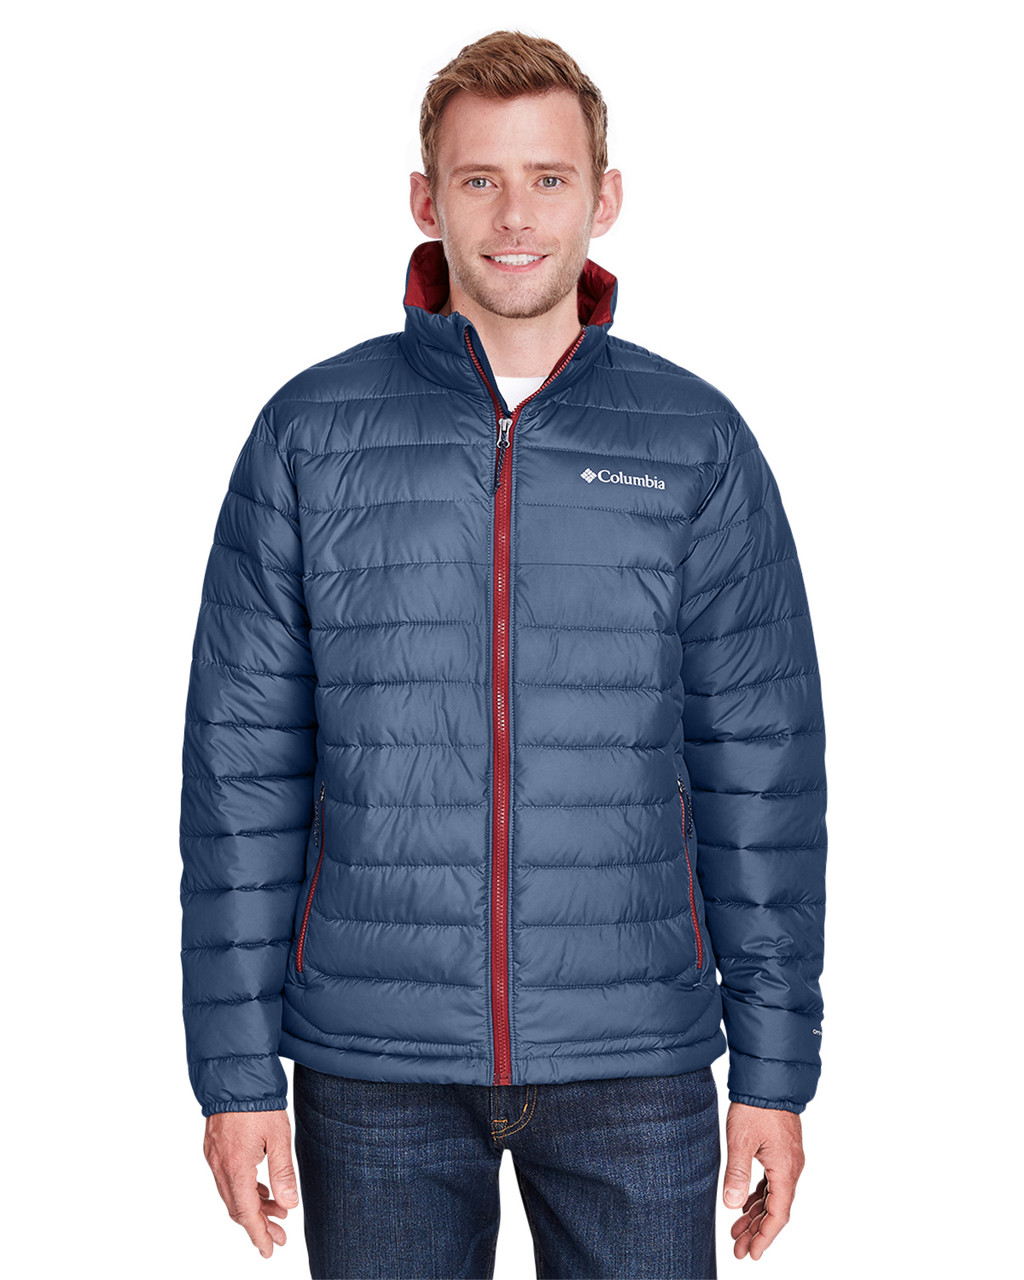 Dark Mountain - 1698001 Columbia Men's Powder Lite™ Jacket | Blankclothing.ca